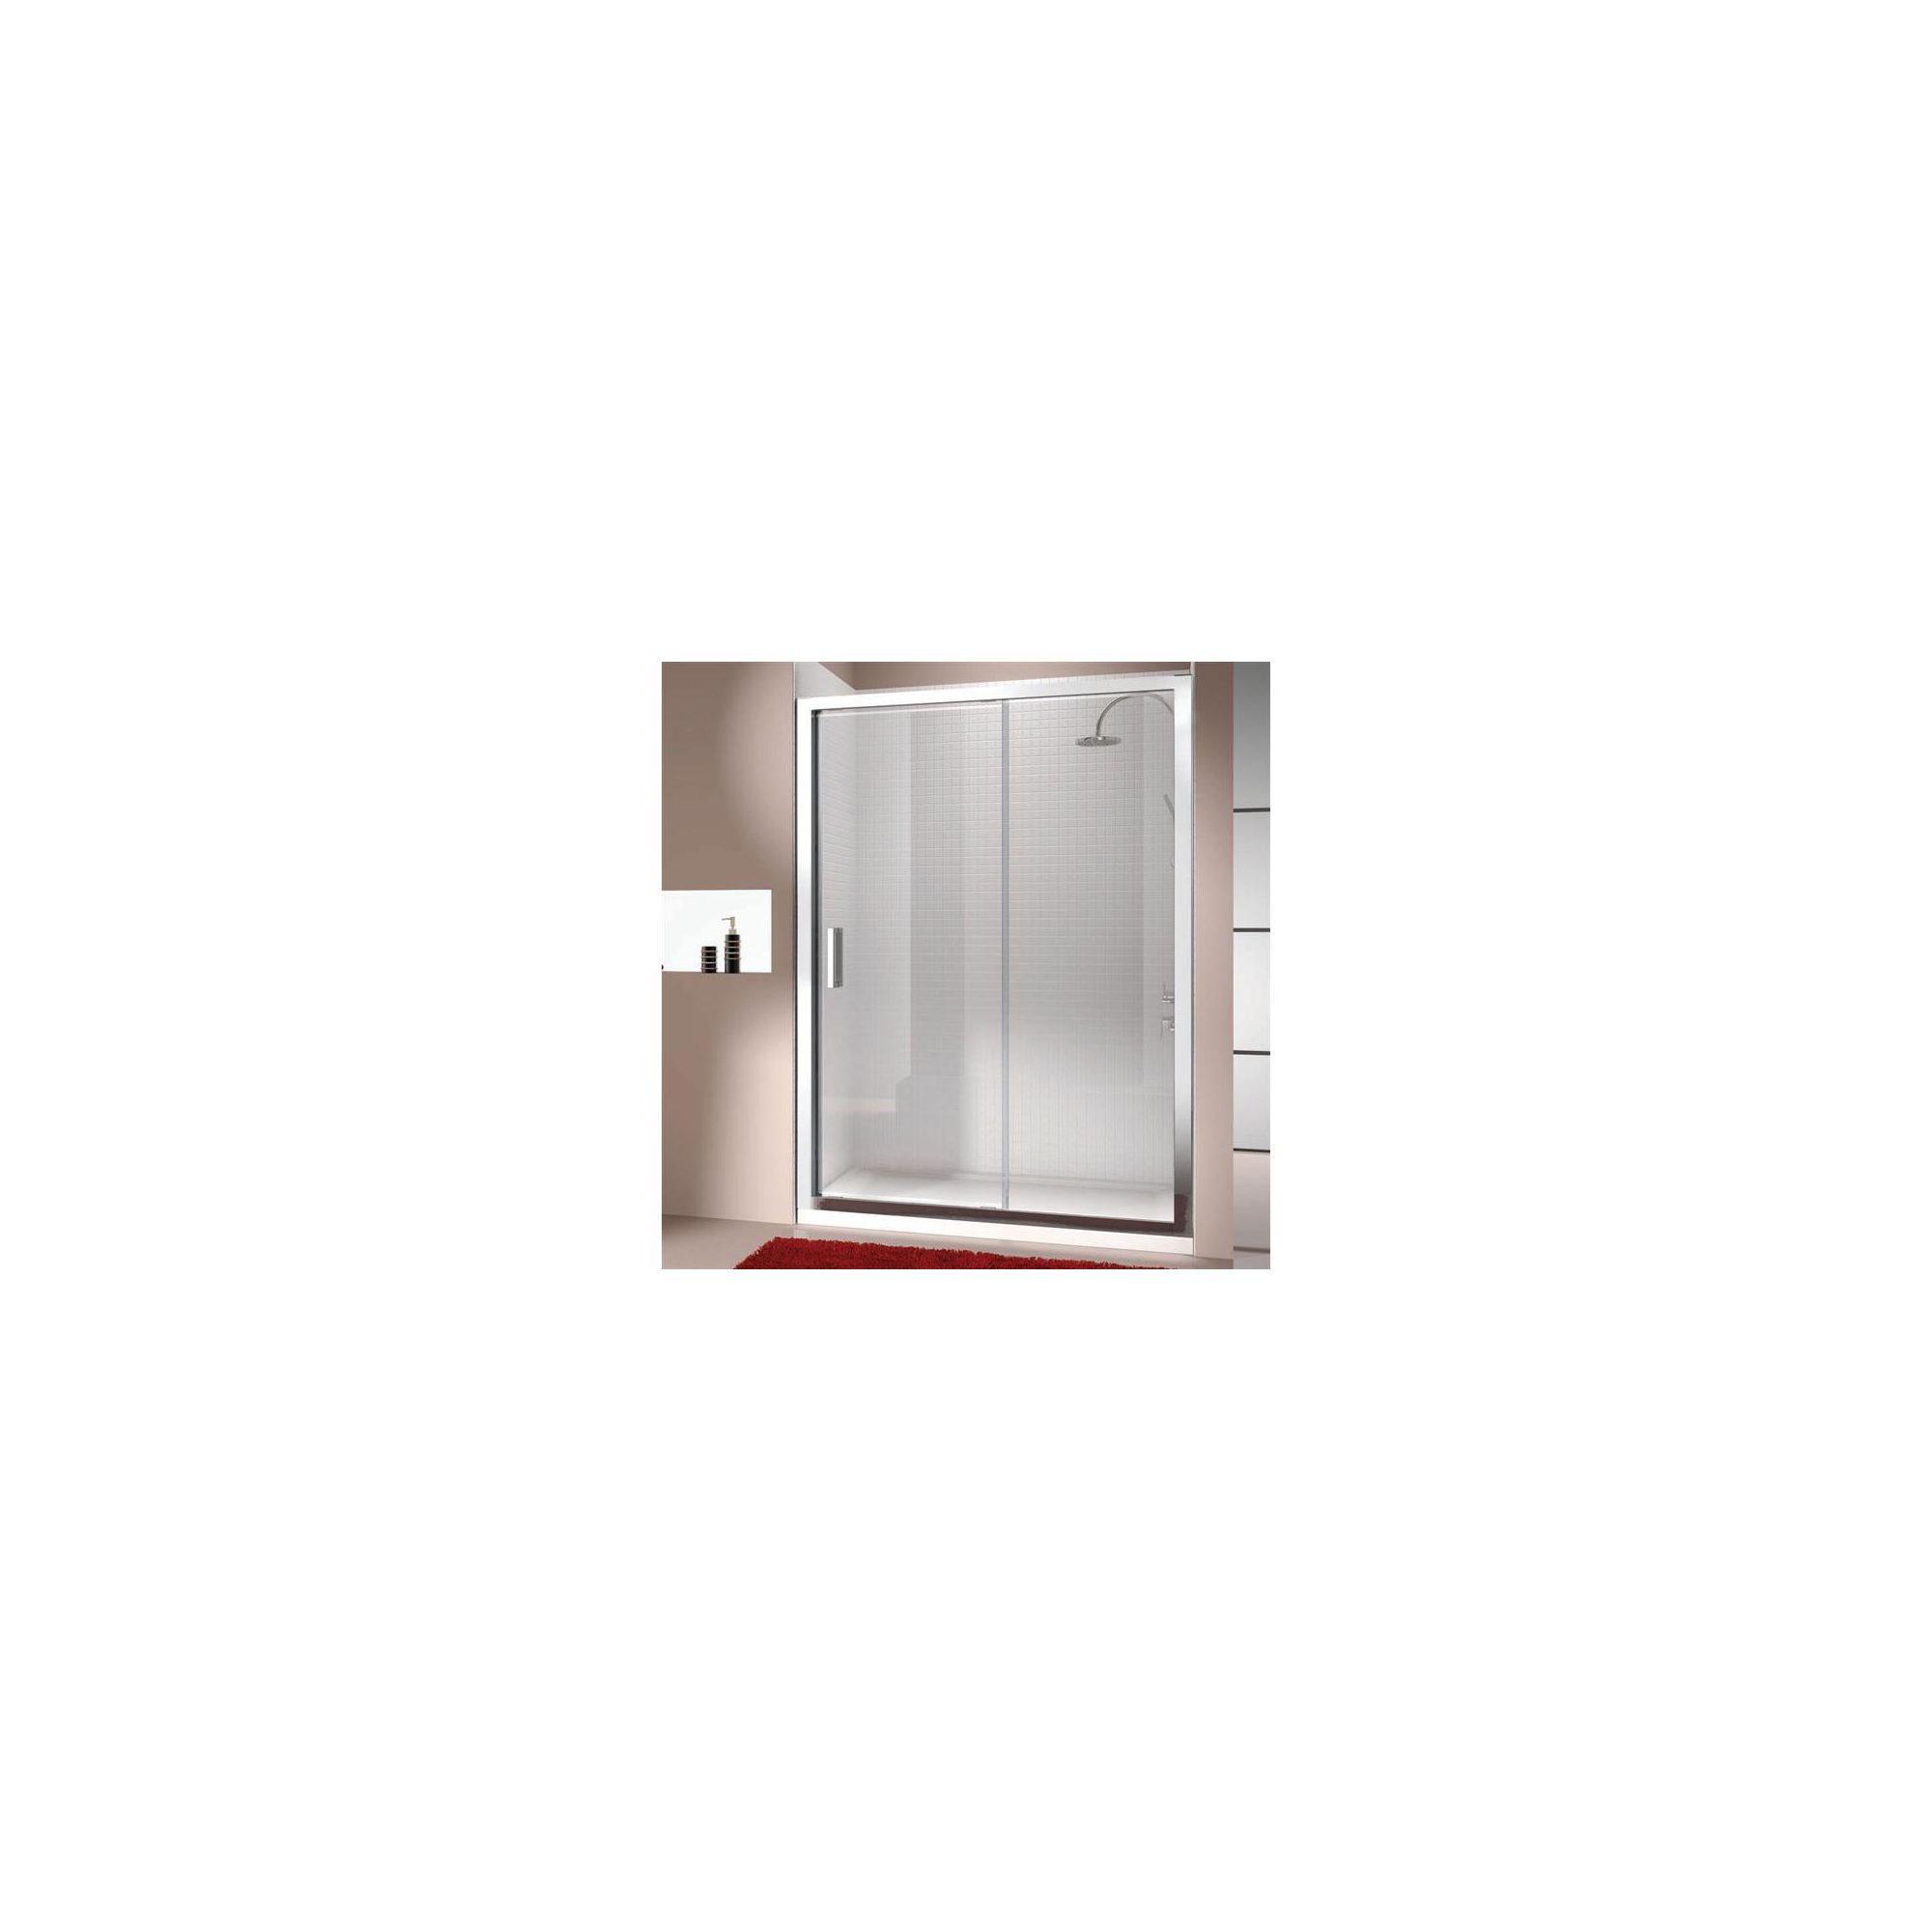 Merlyn Vivid Eight Sliding Door Alcove Shower Enclosure, 1600mm x 800mm, Low Profile Tray, 8mm Glass at Tescos Direct